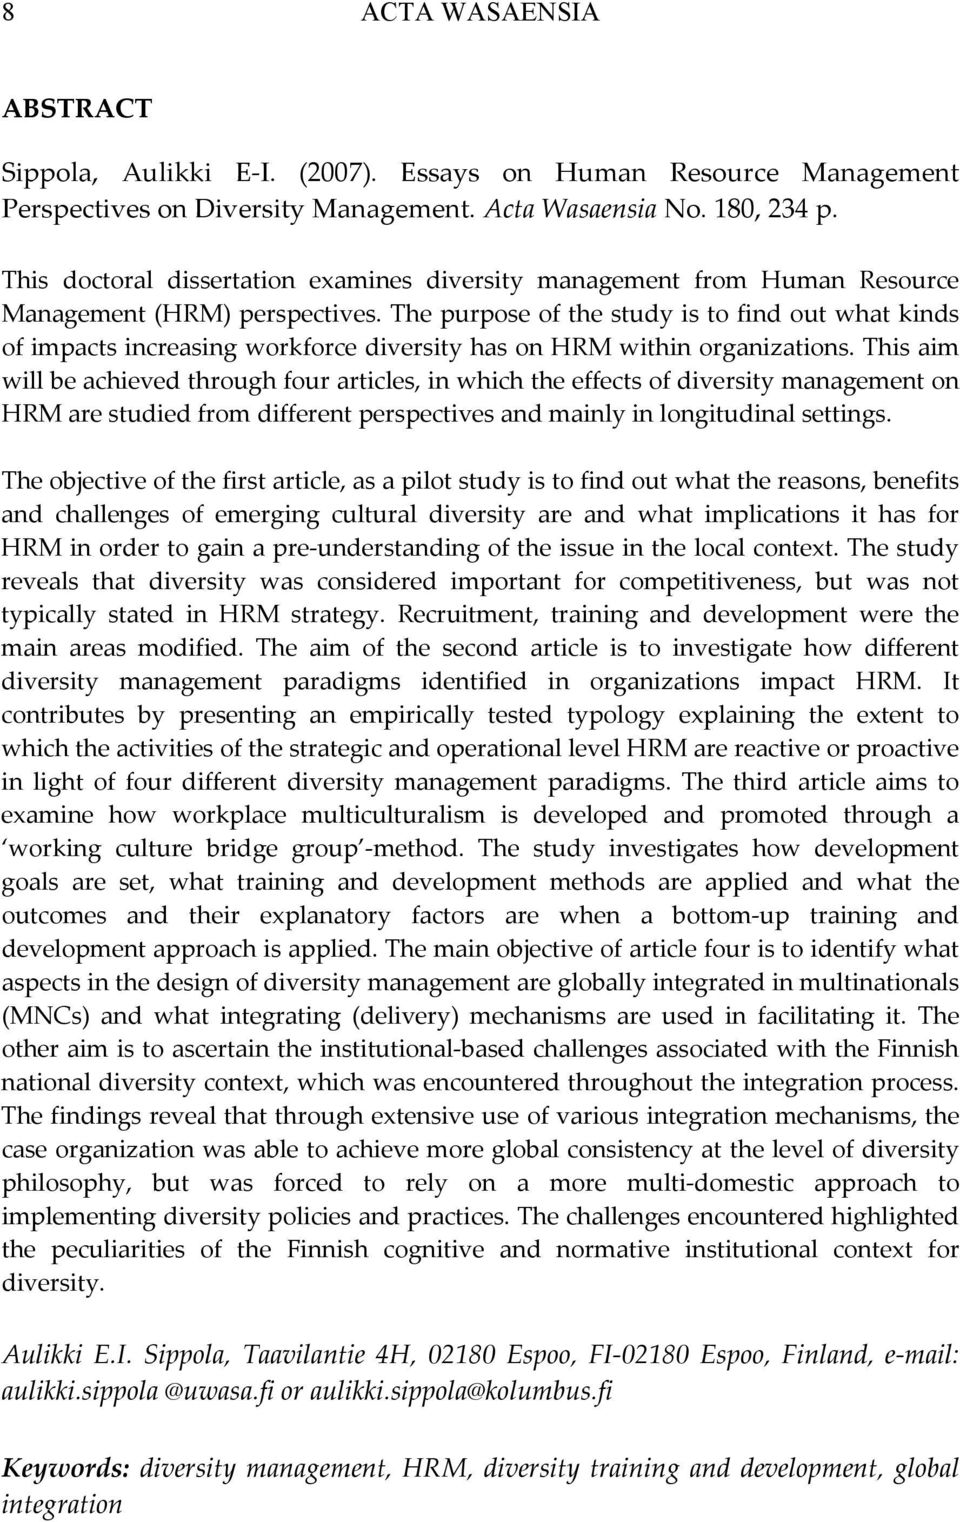 dissertation on diversity management